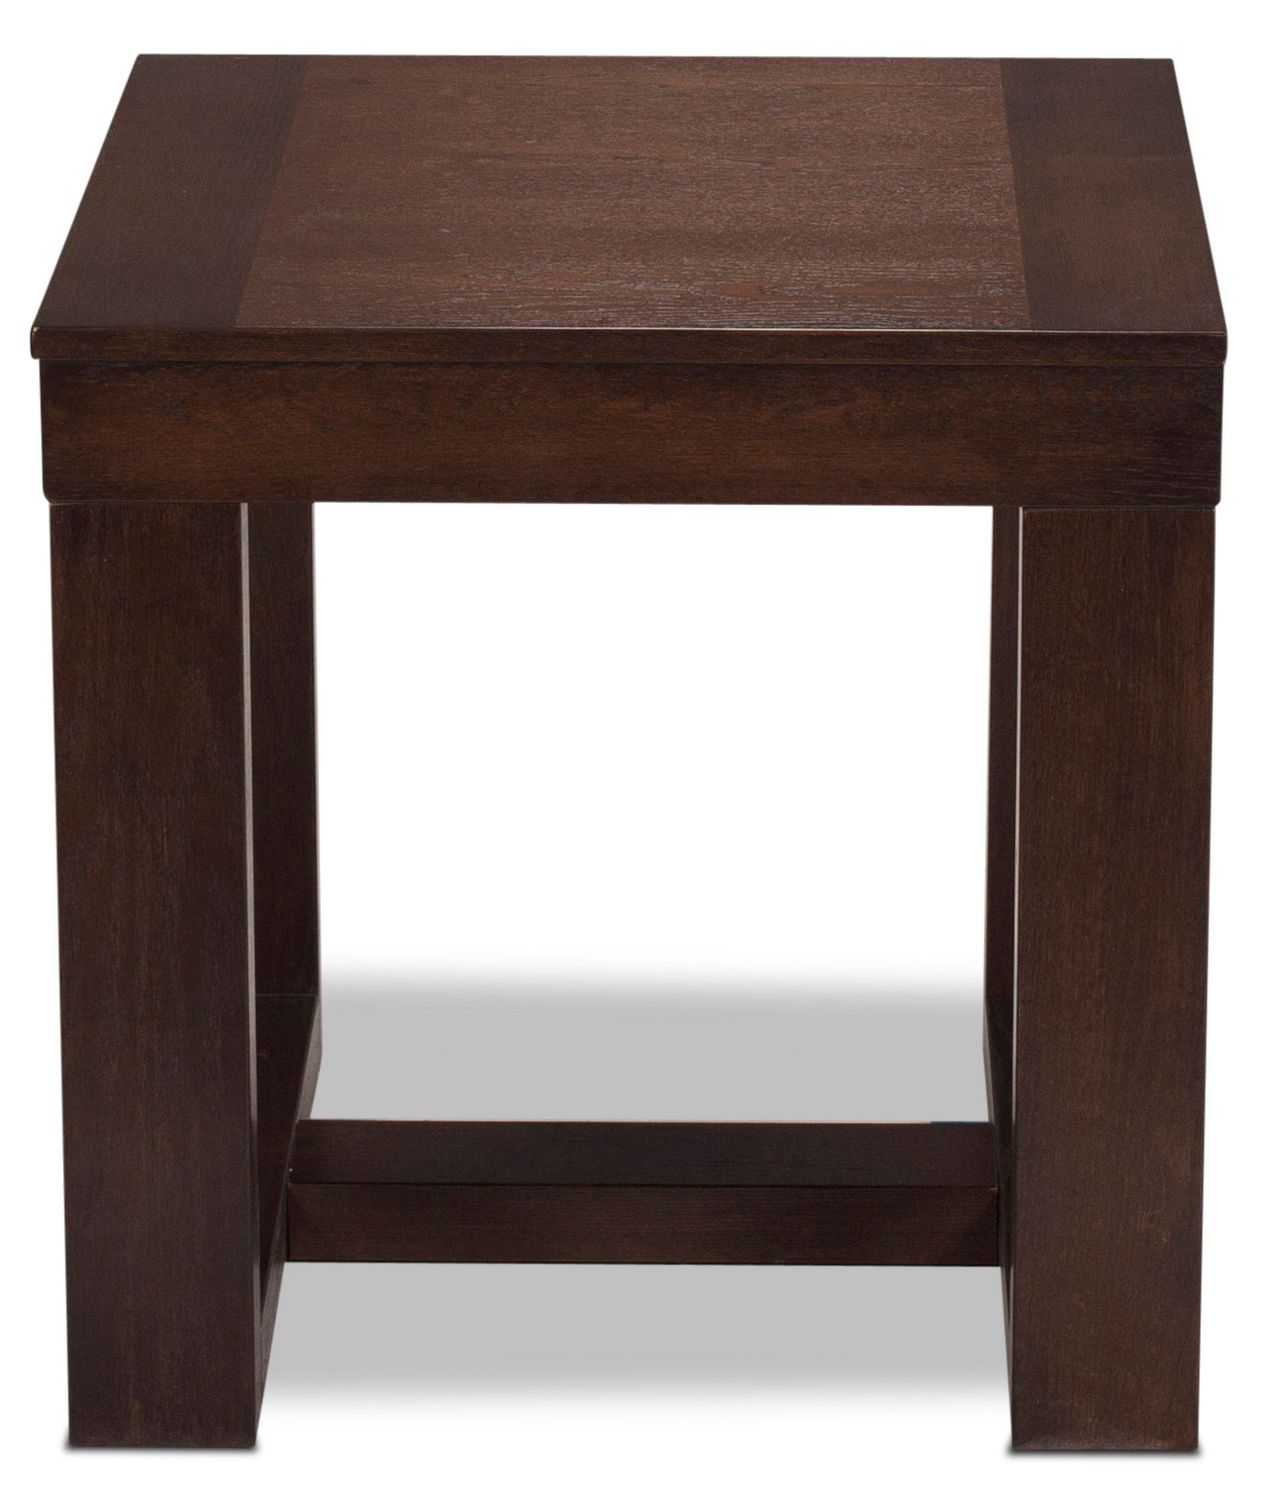 monterey end table dark brown accent and occasional furniture tiffany nightstand lamps pottery barn dining room sets front entrance white resin coffee hobby lobby outdoor nesting